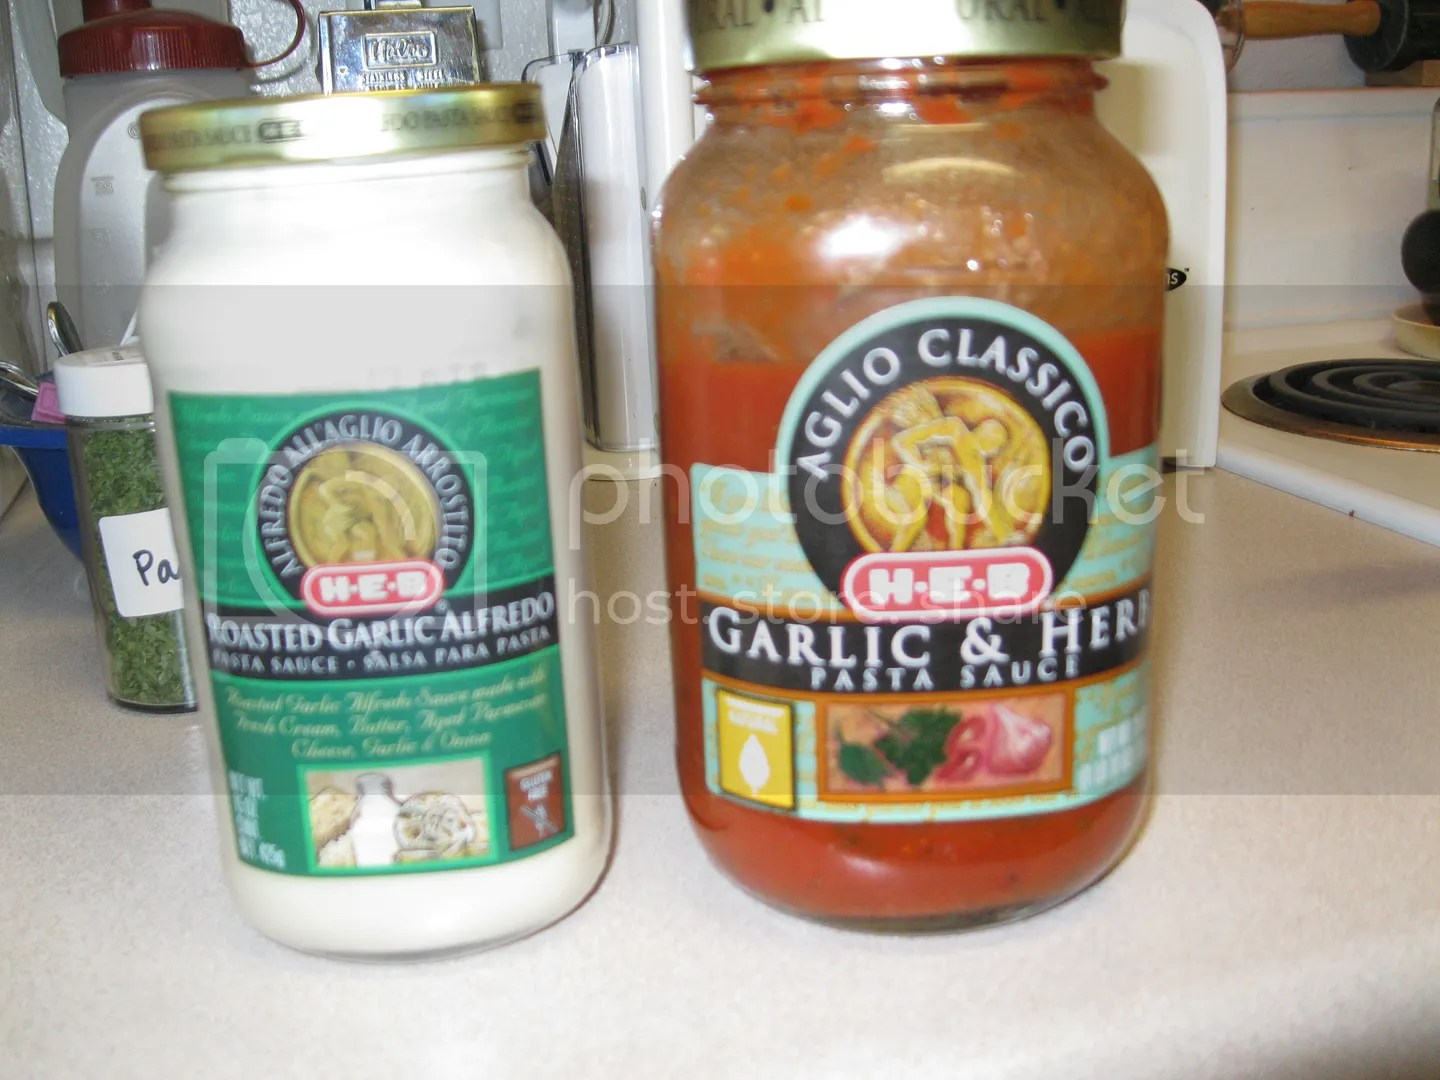 Sauces used for Parma Rosa